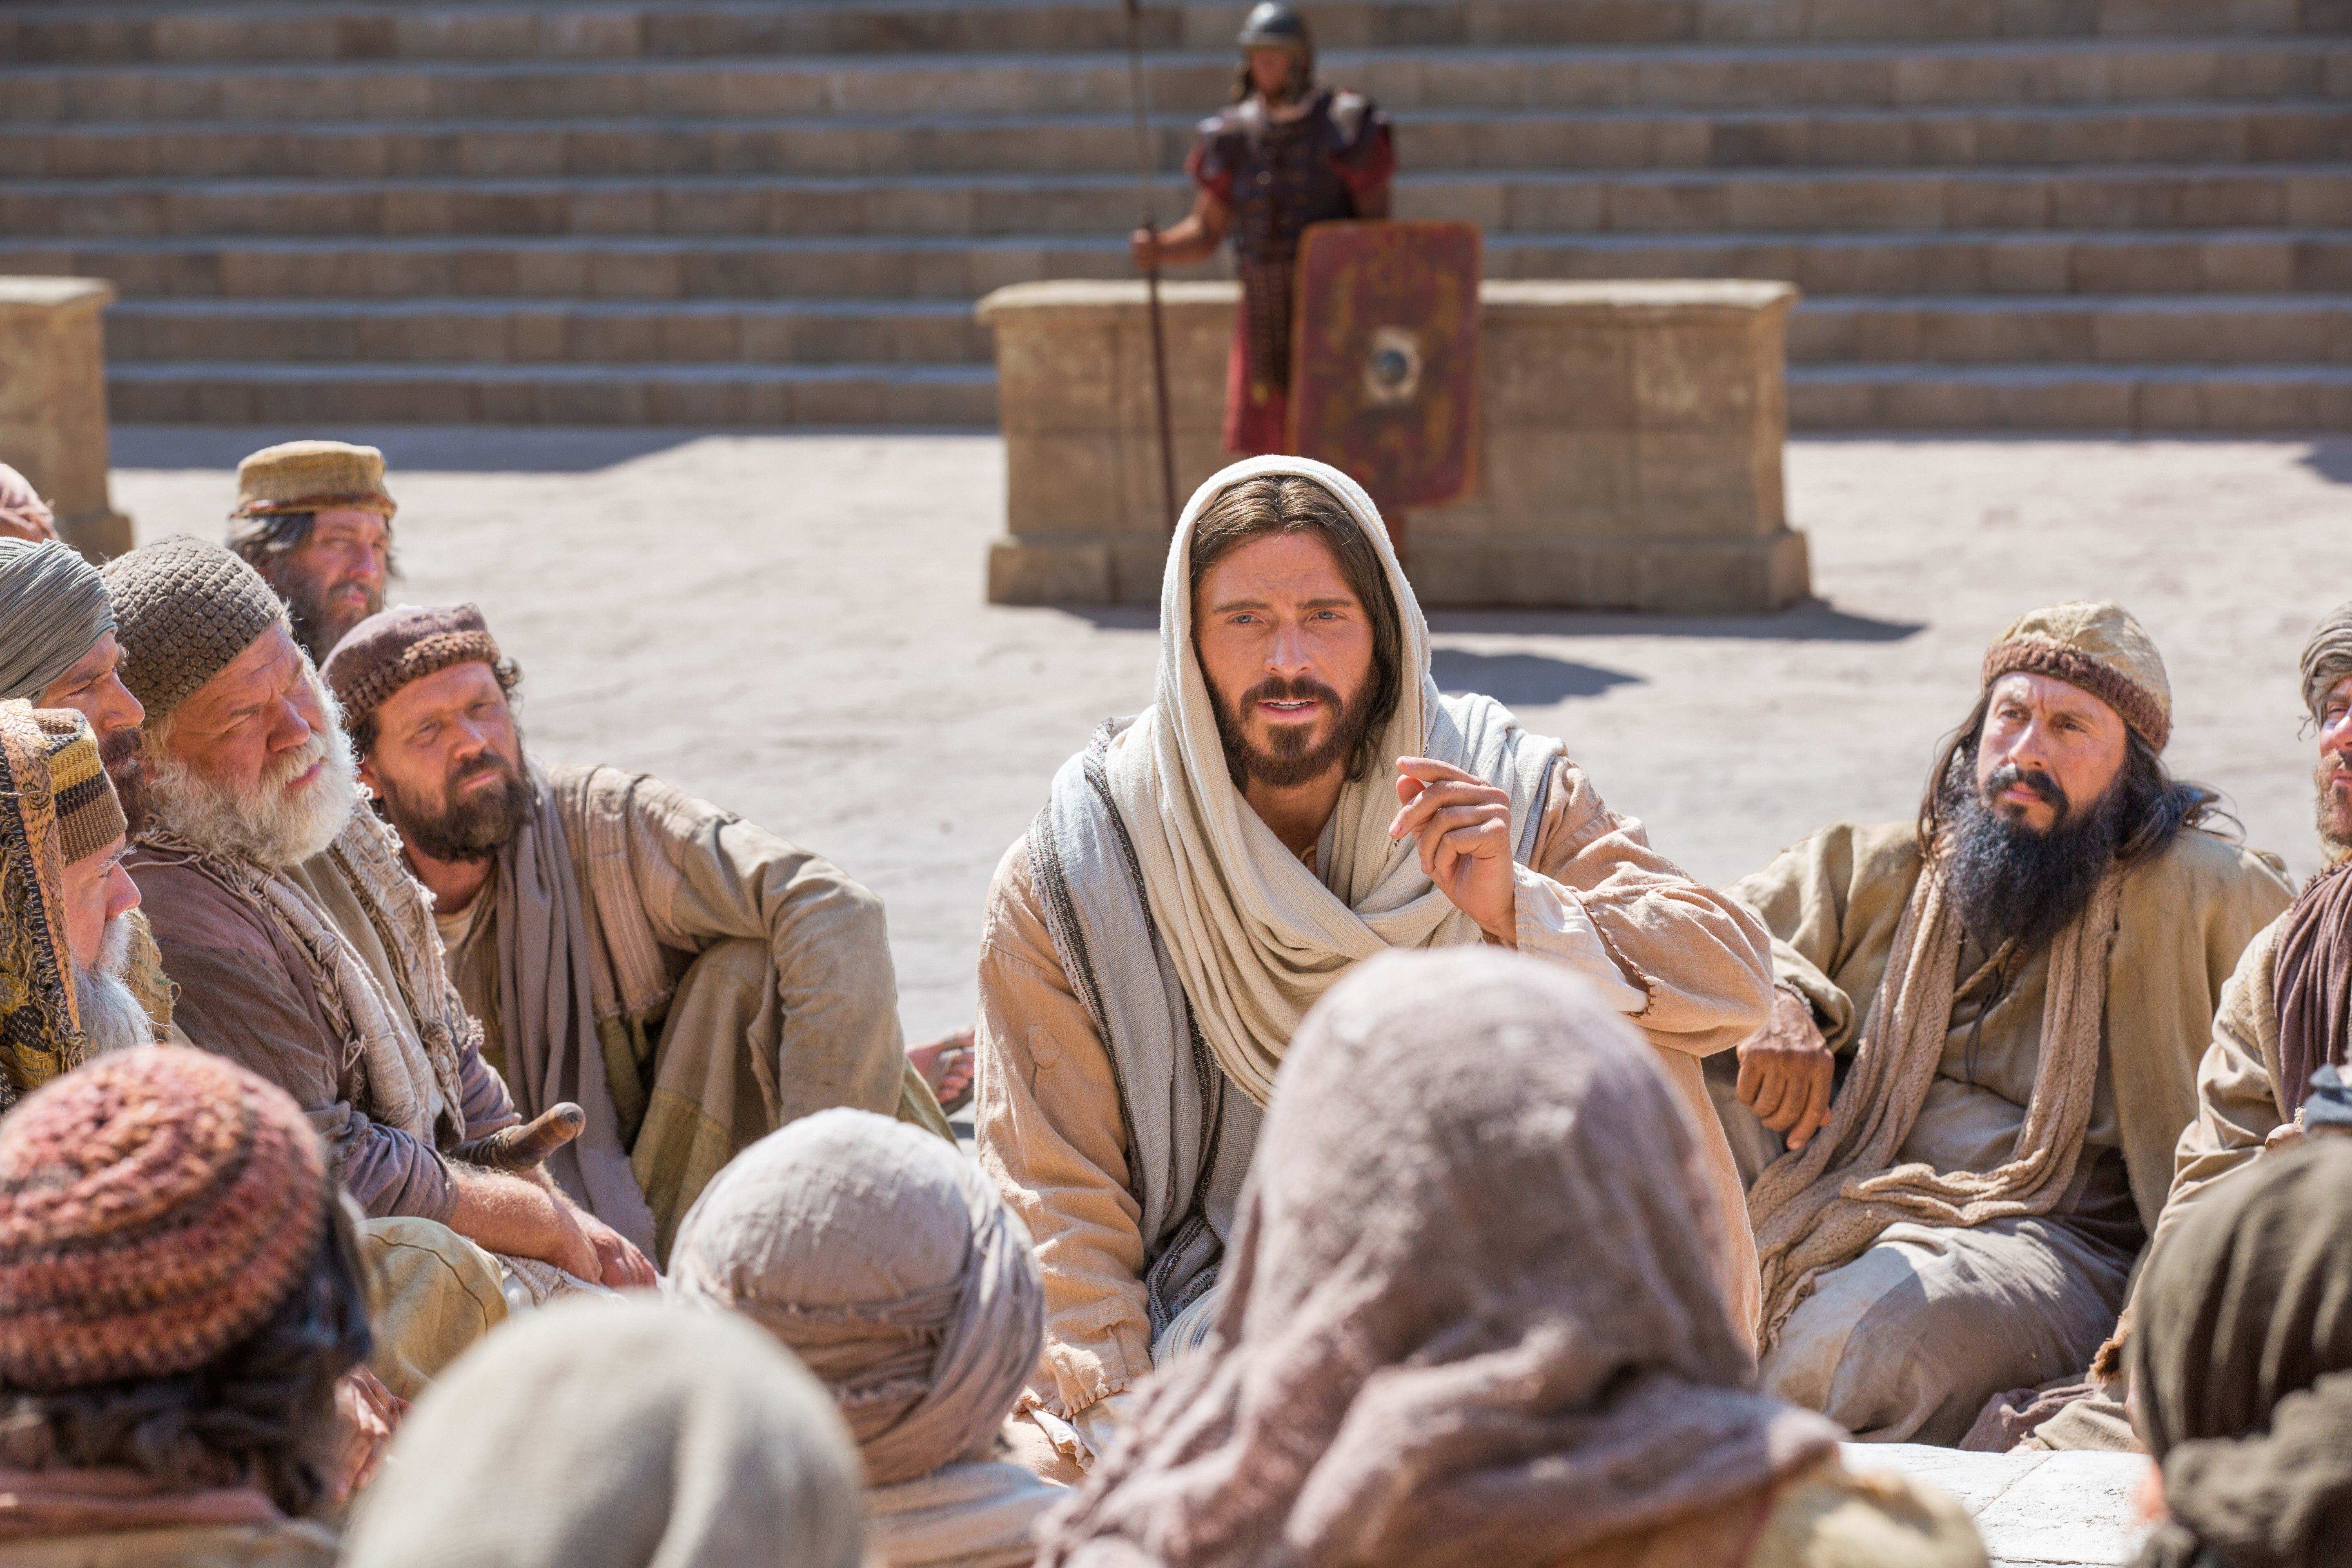 Christ tells a group of people that He is the Good Shepherd.